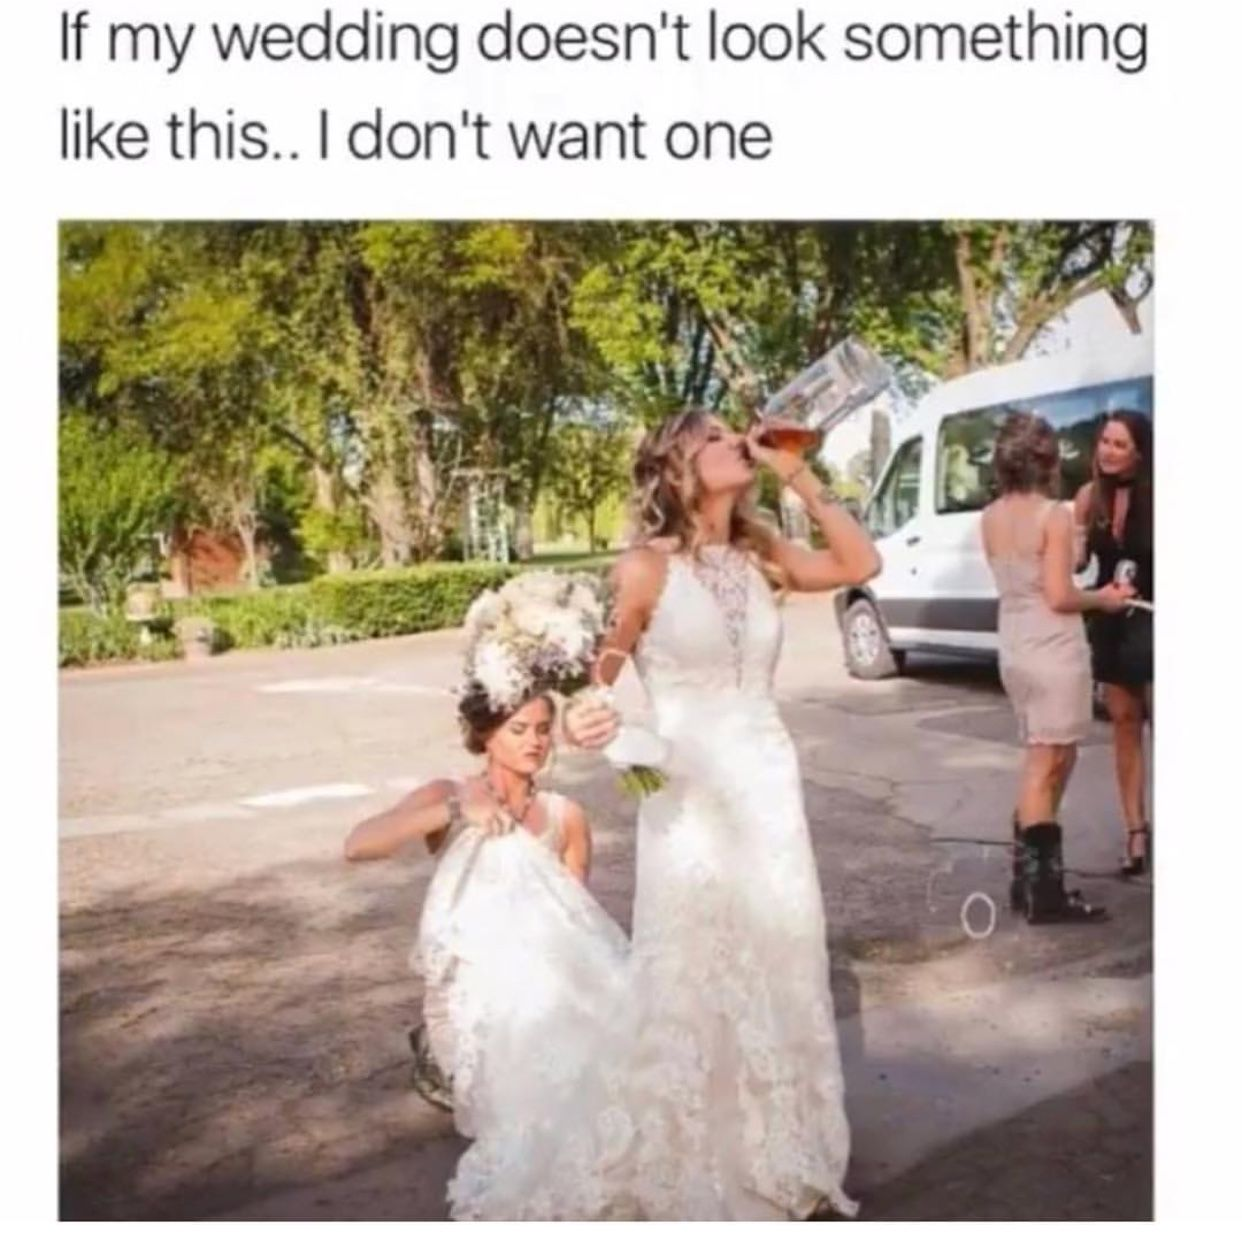 Pin by Brenda C on That Makes Me Laugh Wedding humor